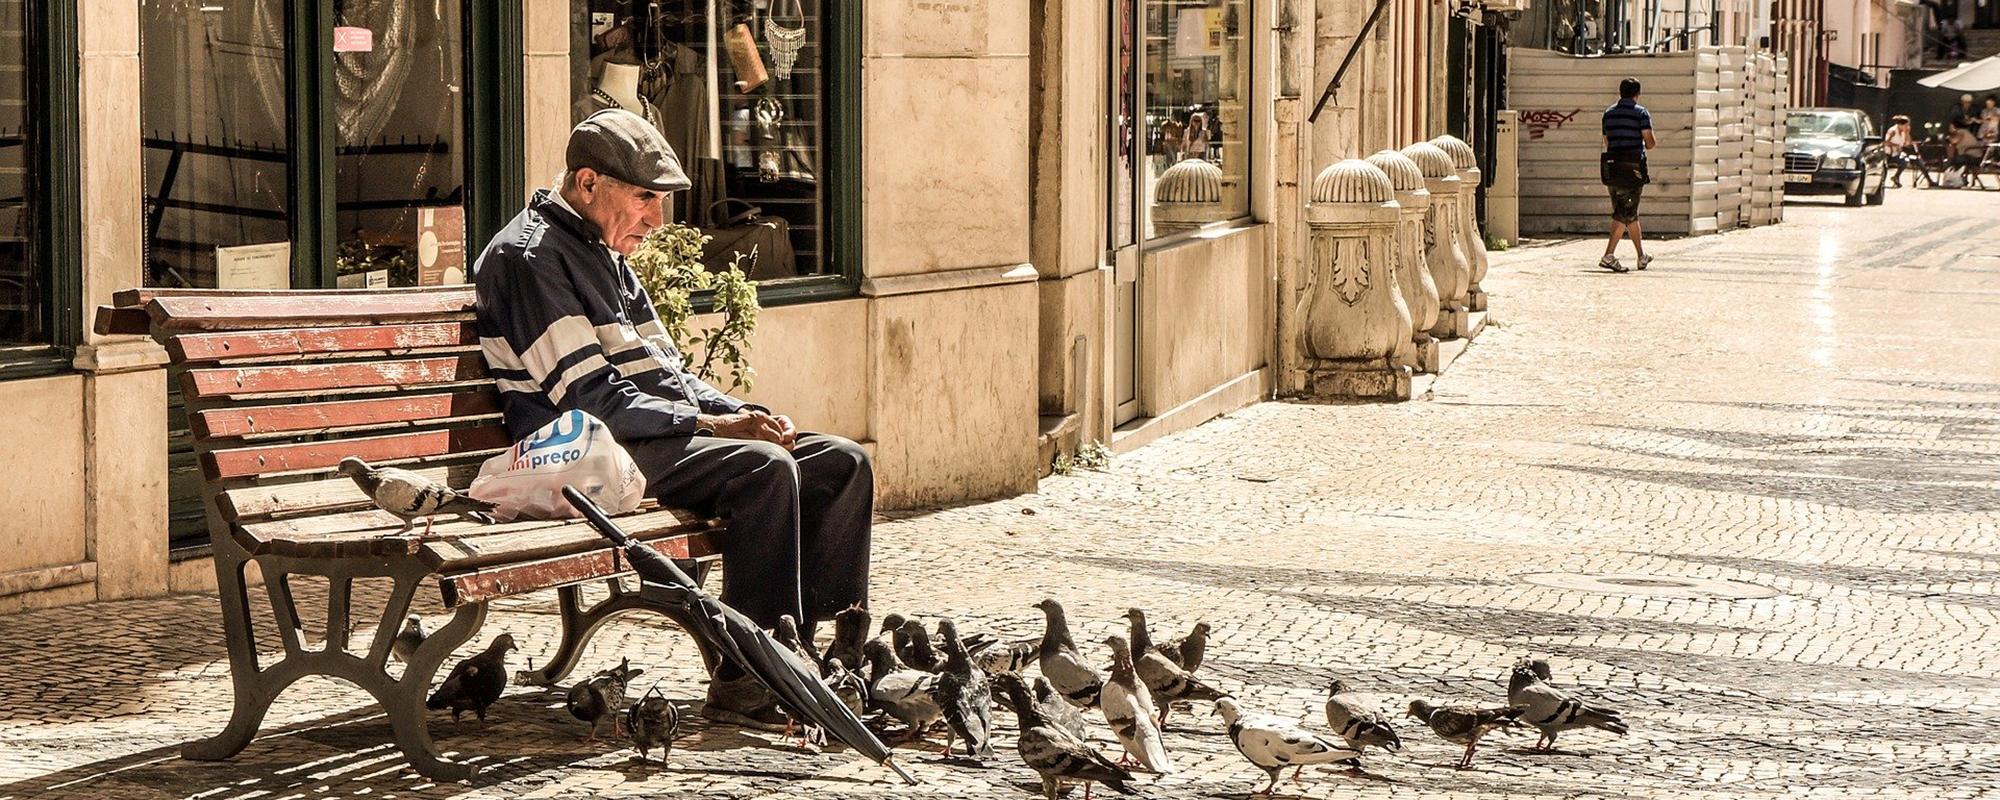 Cities need to become age-friendly. Image by Stocksnap on Pixabay